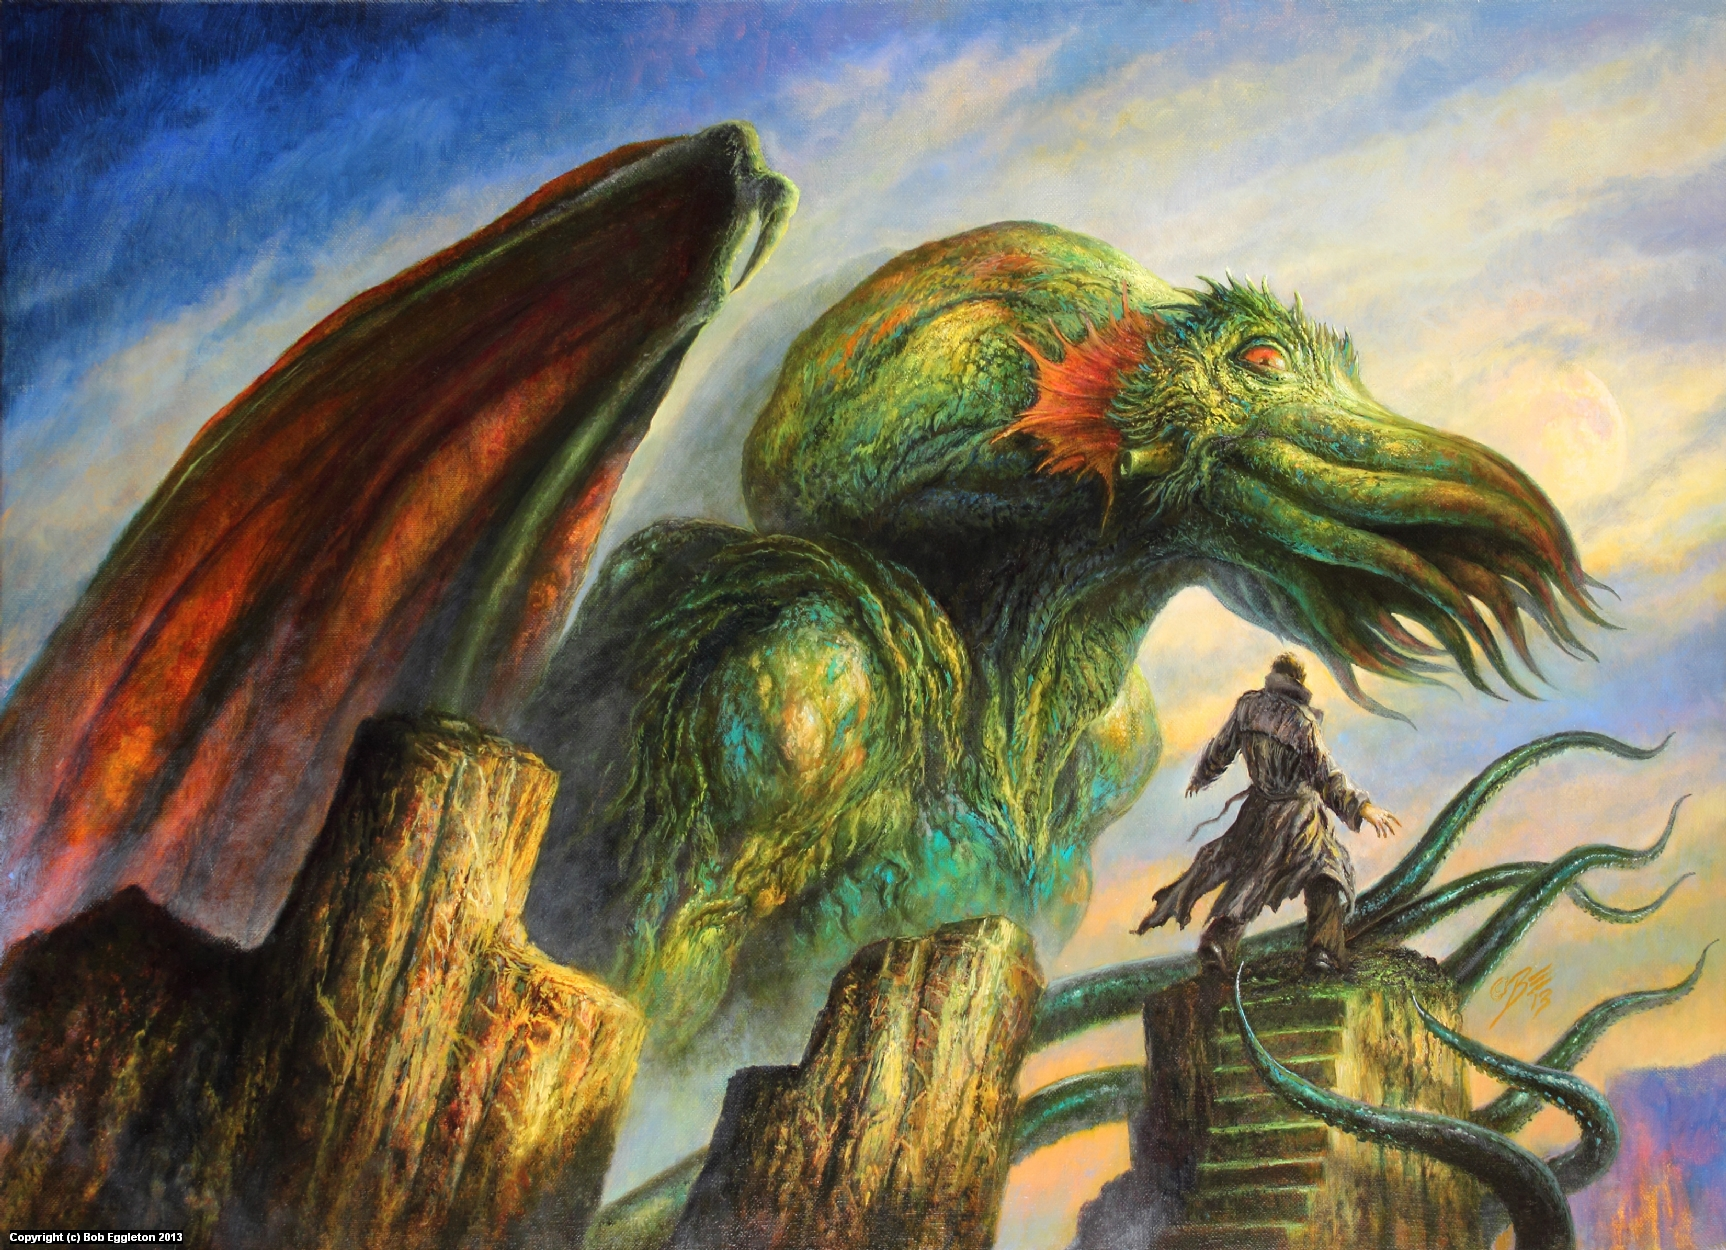 THE COMPLEAT CROW Artwork by Bob Eggleton